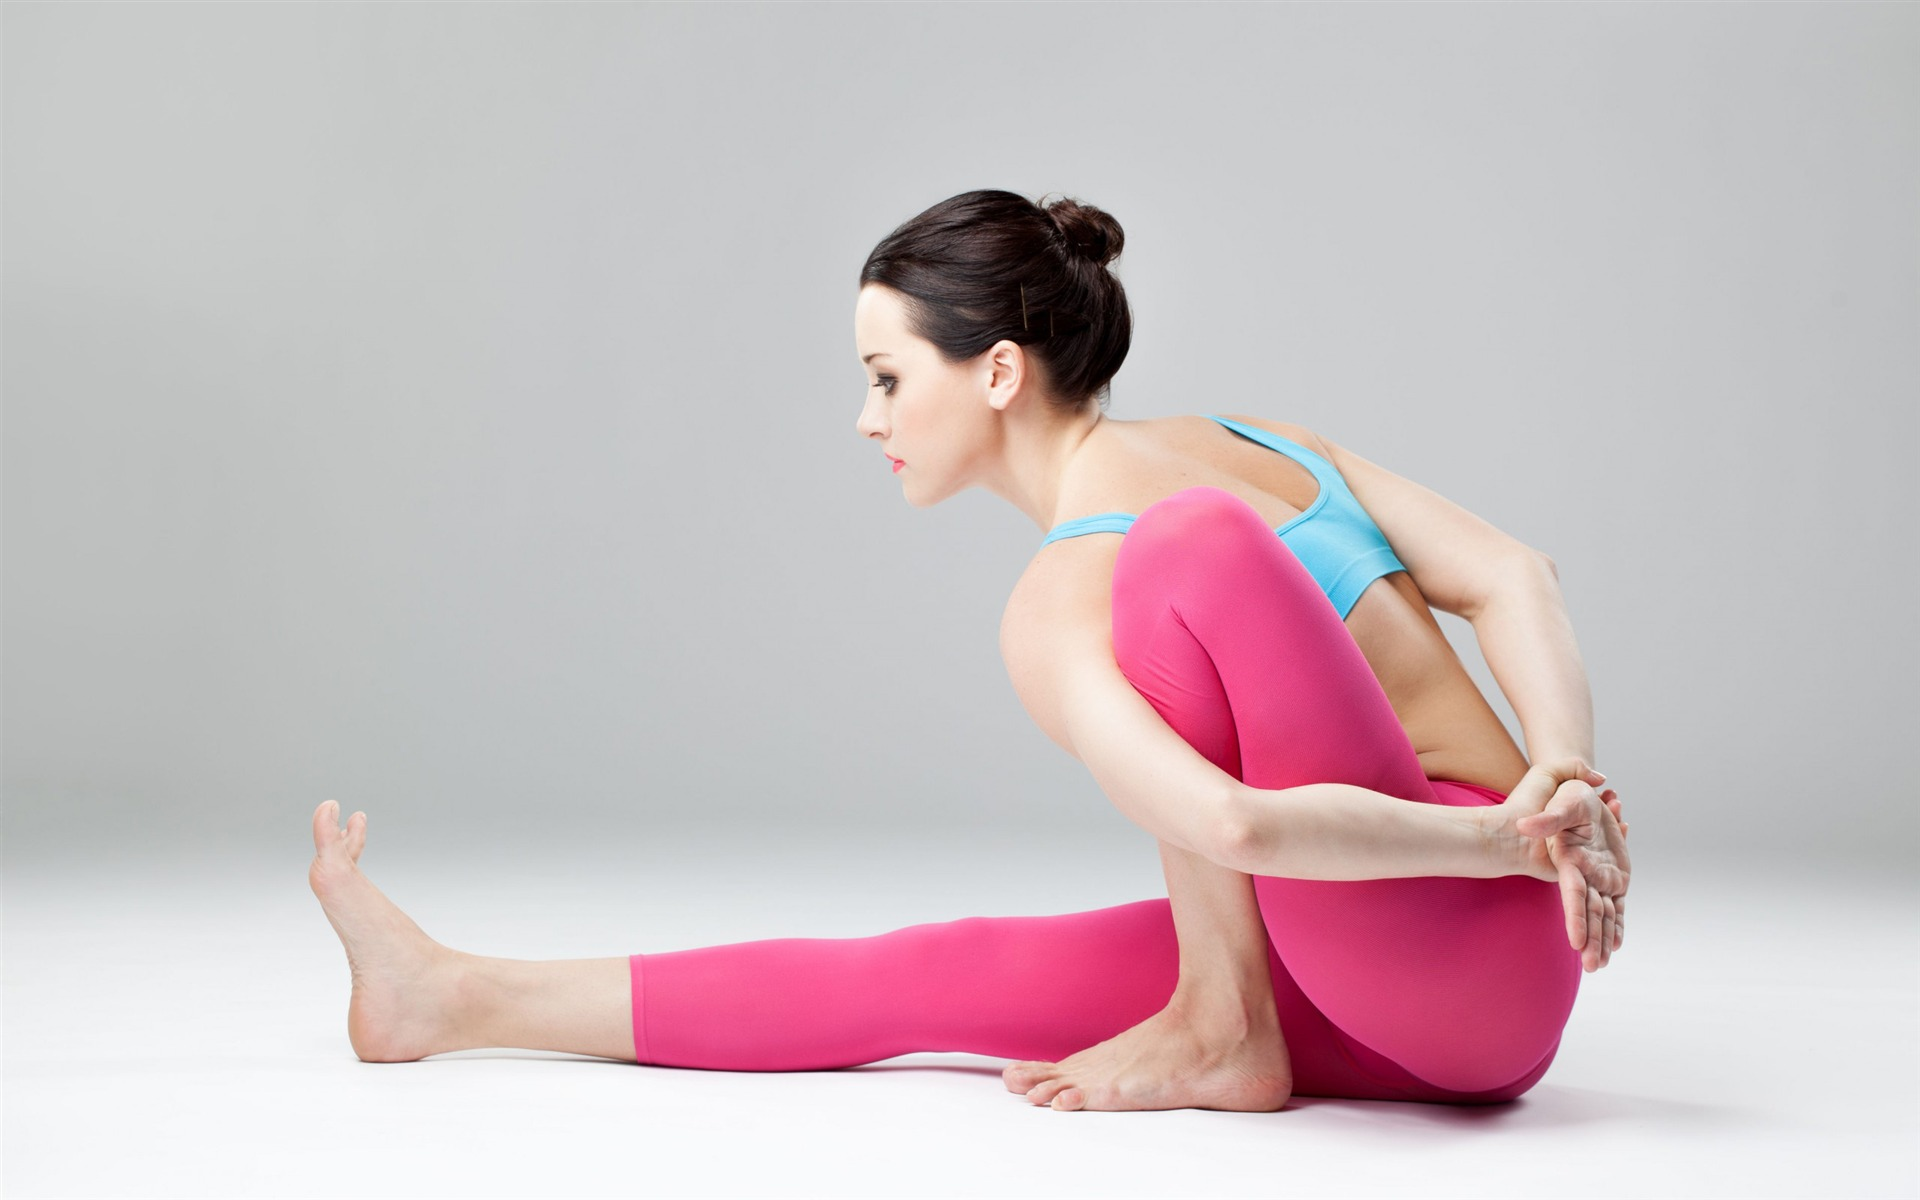 Yoga weight loss fitness photo hq 1920x1200